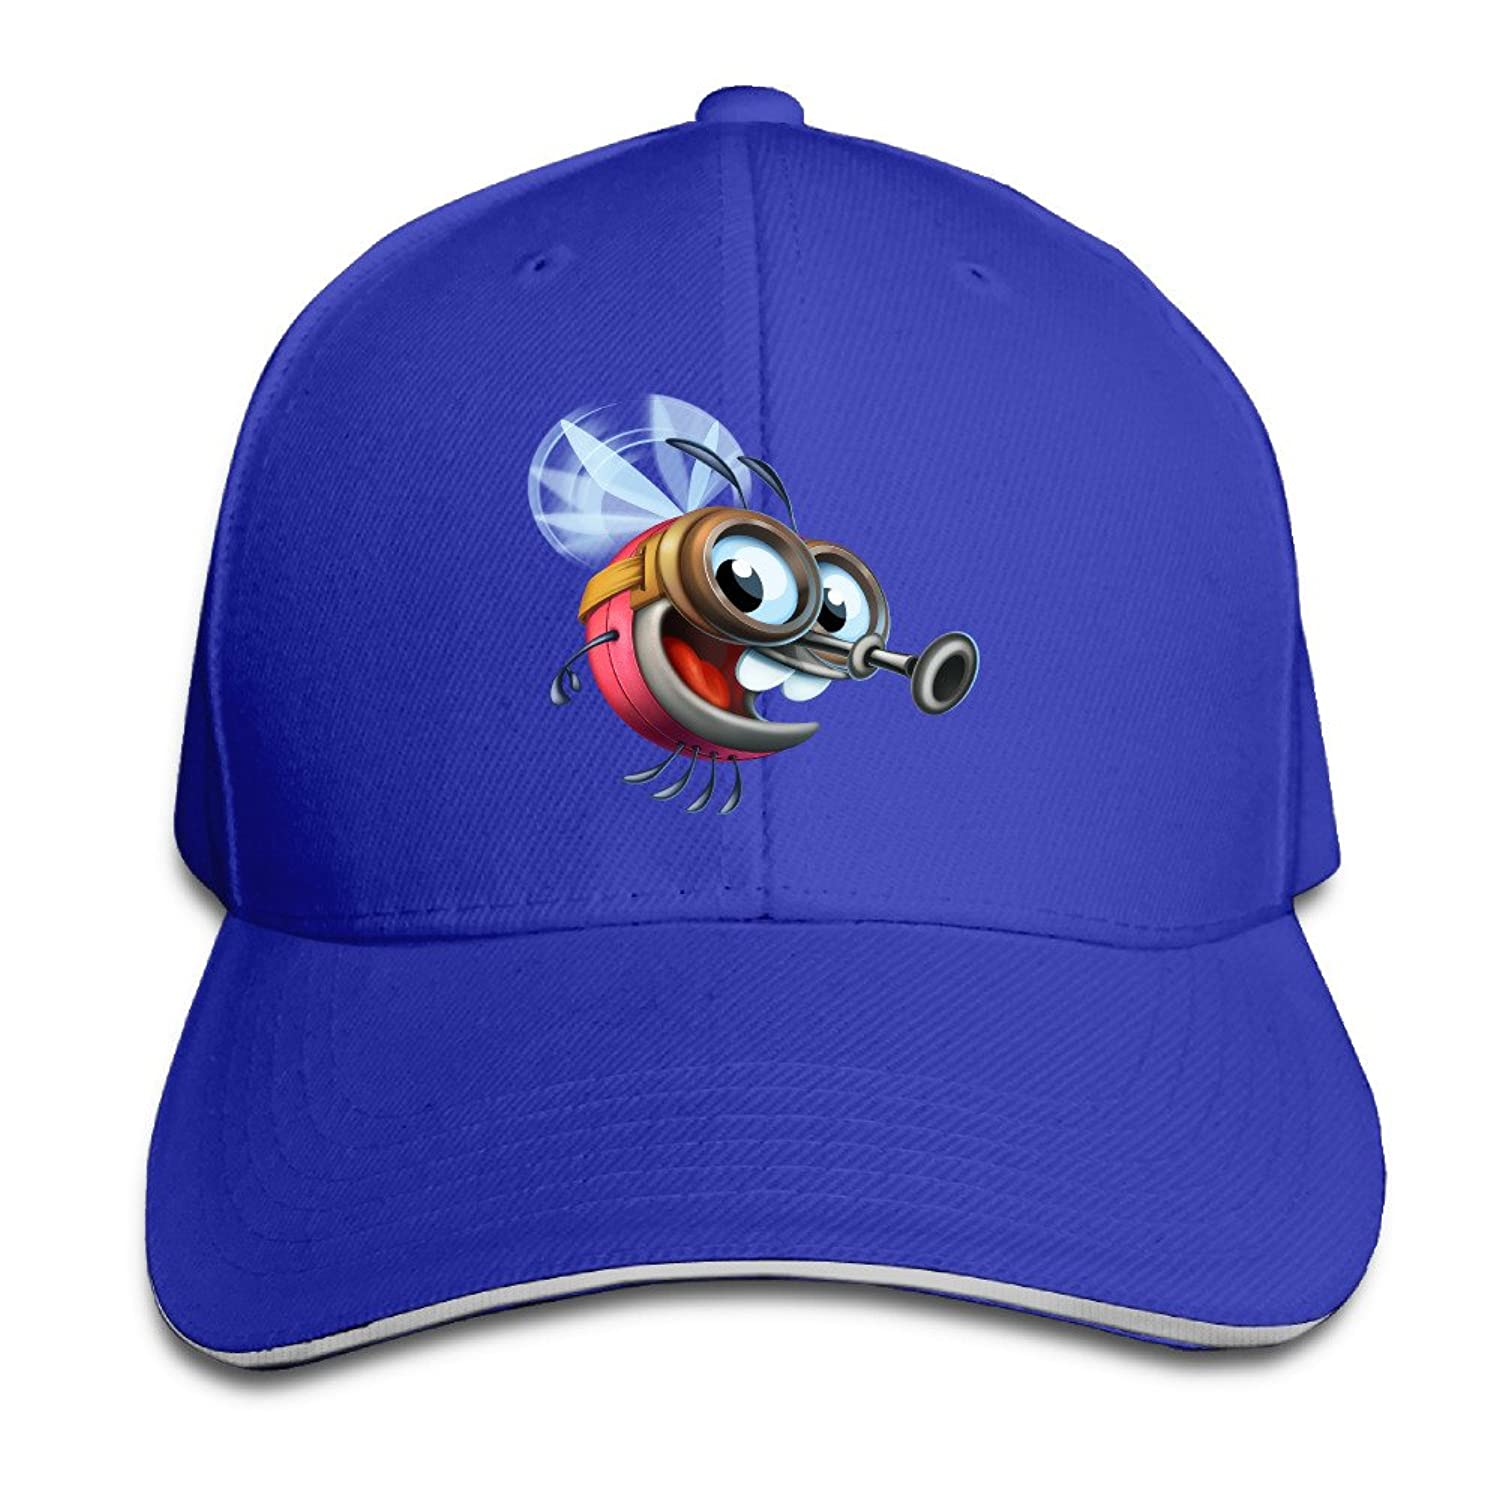 White Fashion Sandwich Caps Five Nights At Freddy's For Unisex